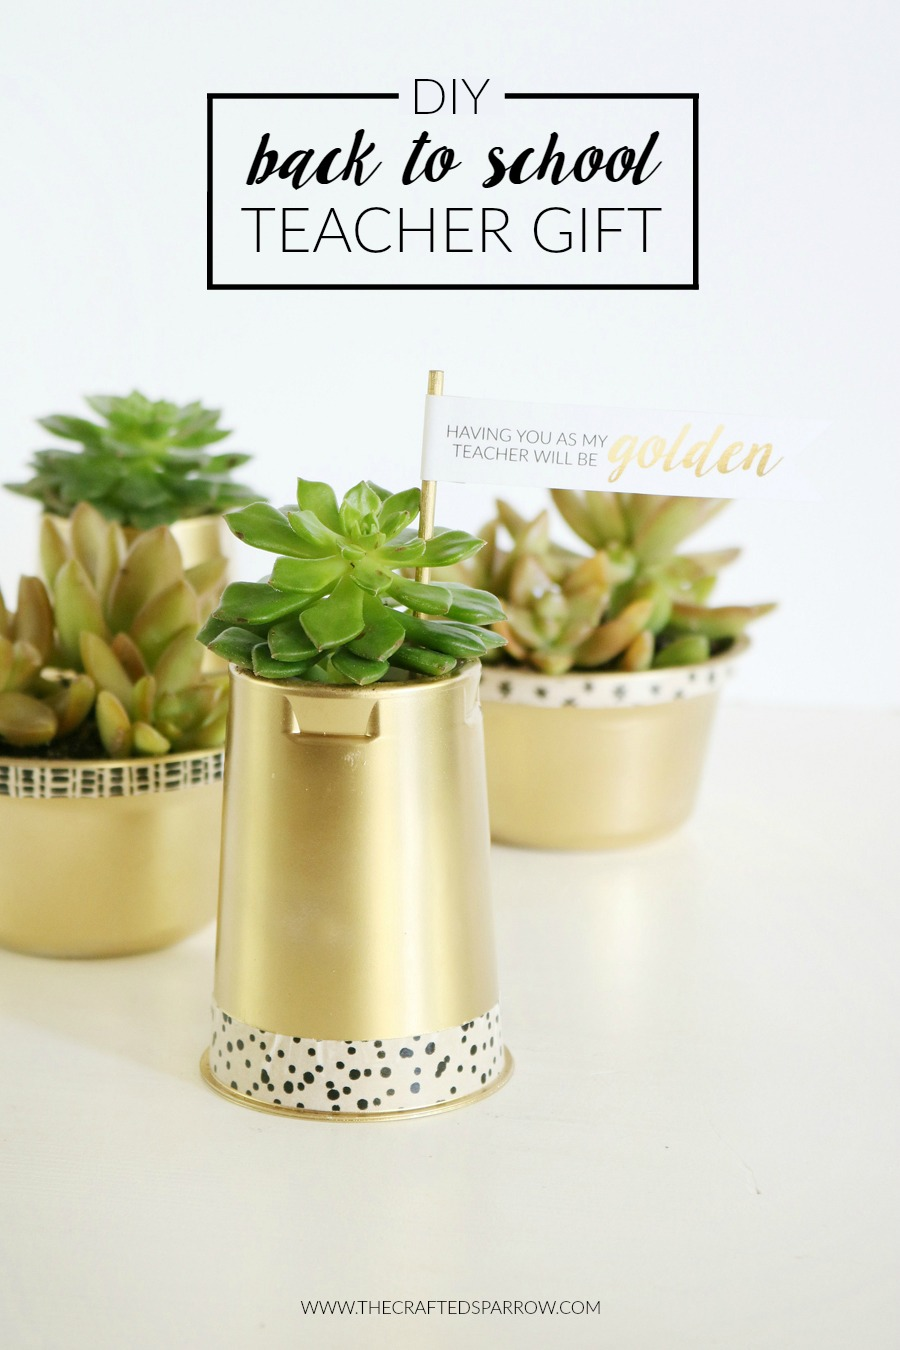 DIY Back to School Teacher Gift